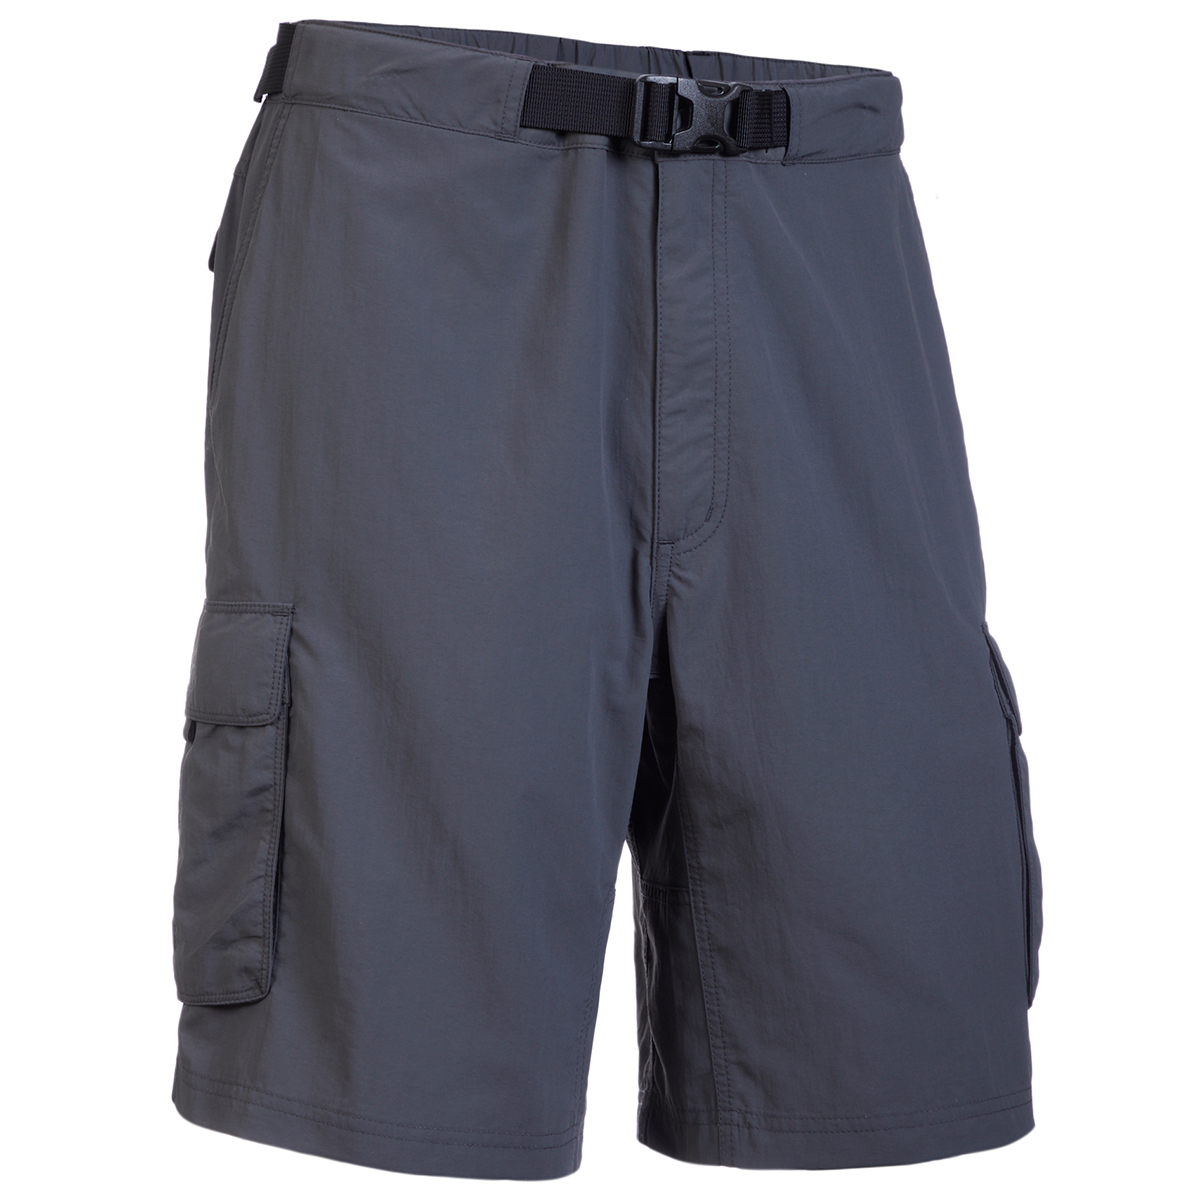 Ems Men's Camp Cargo Shorts - Black, 40